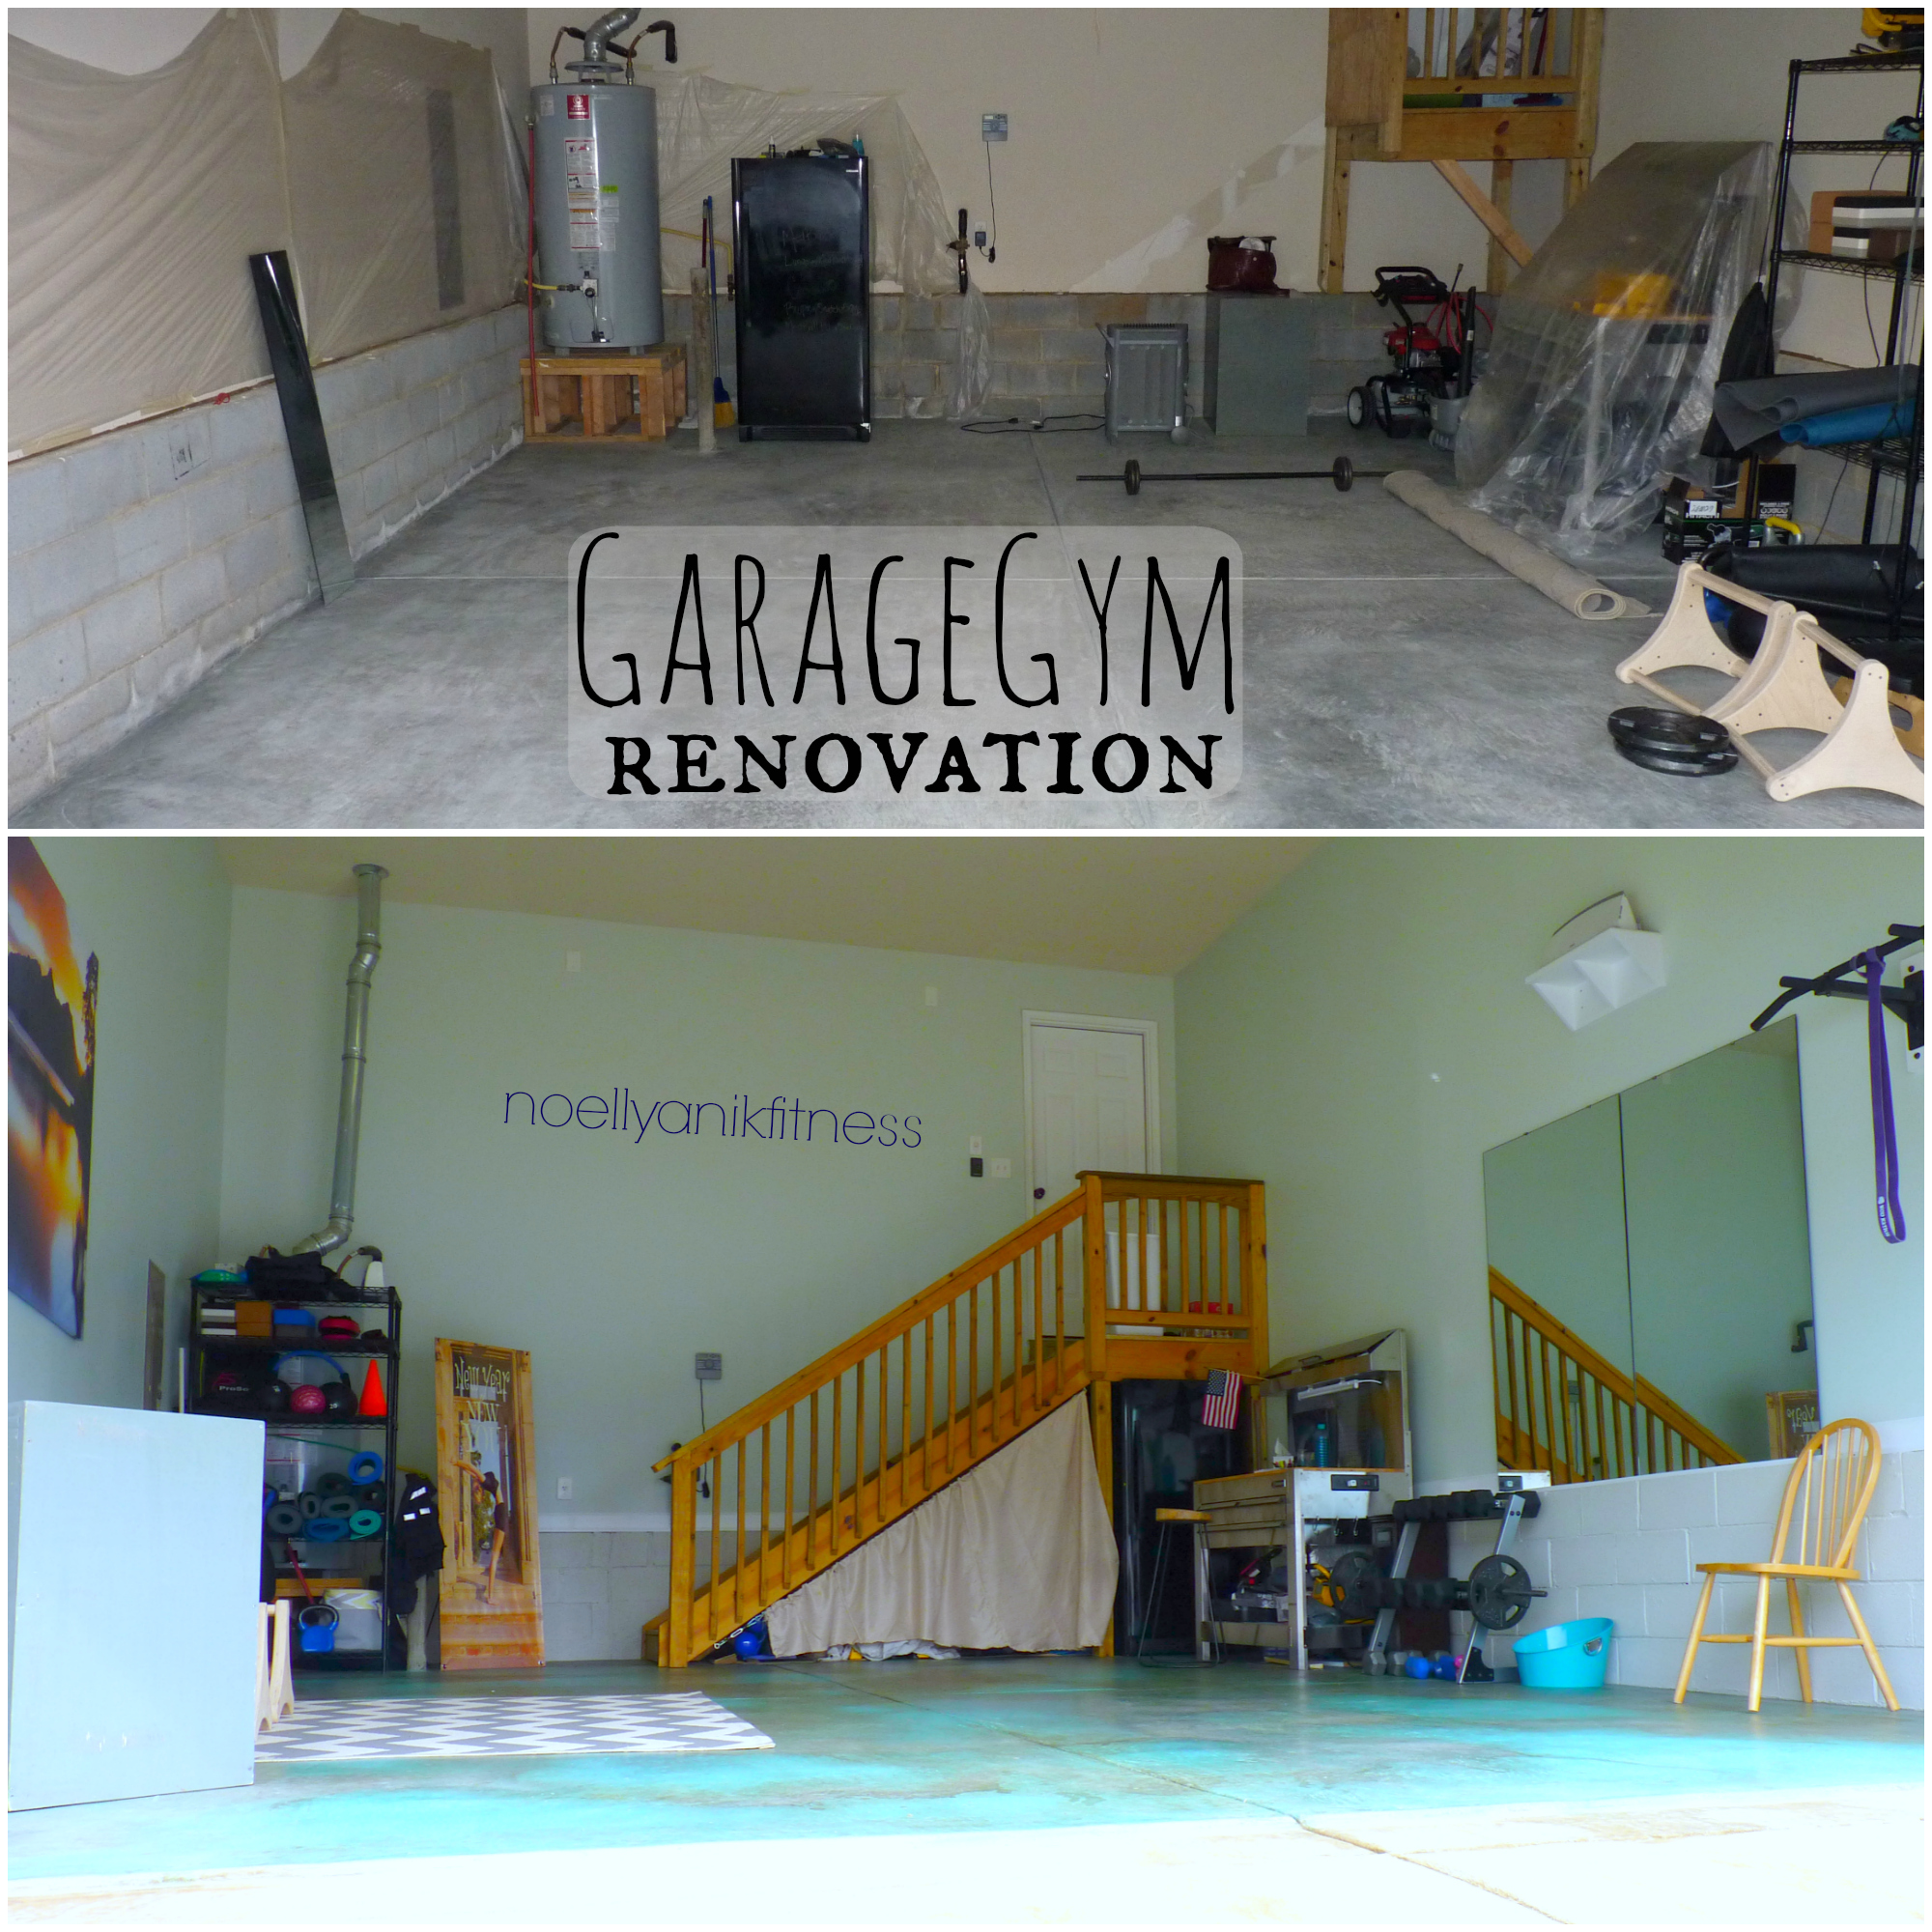 Garage gym of the week fred abalon